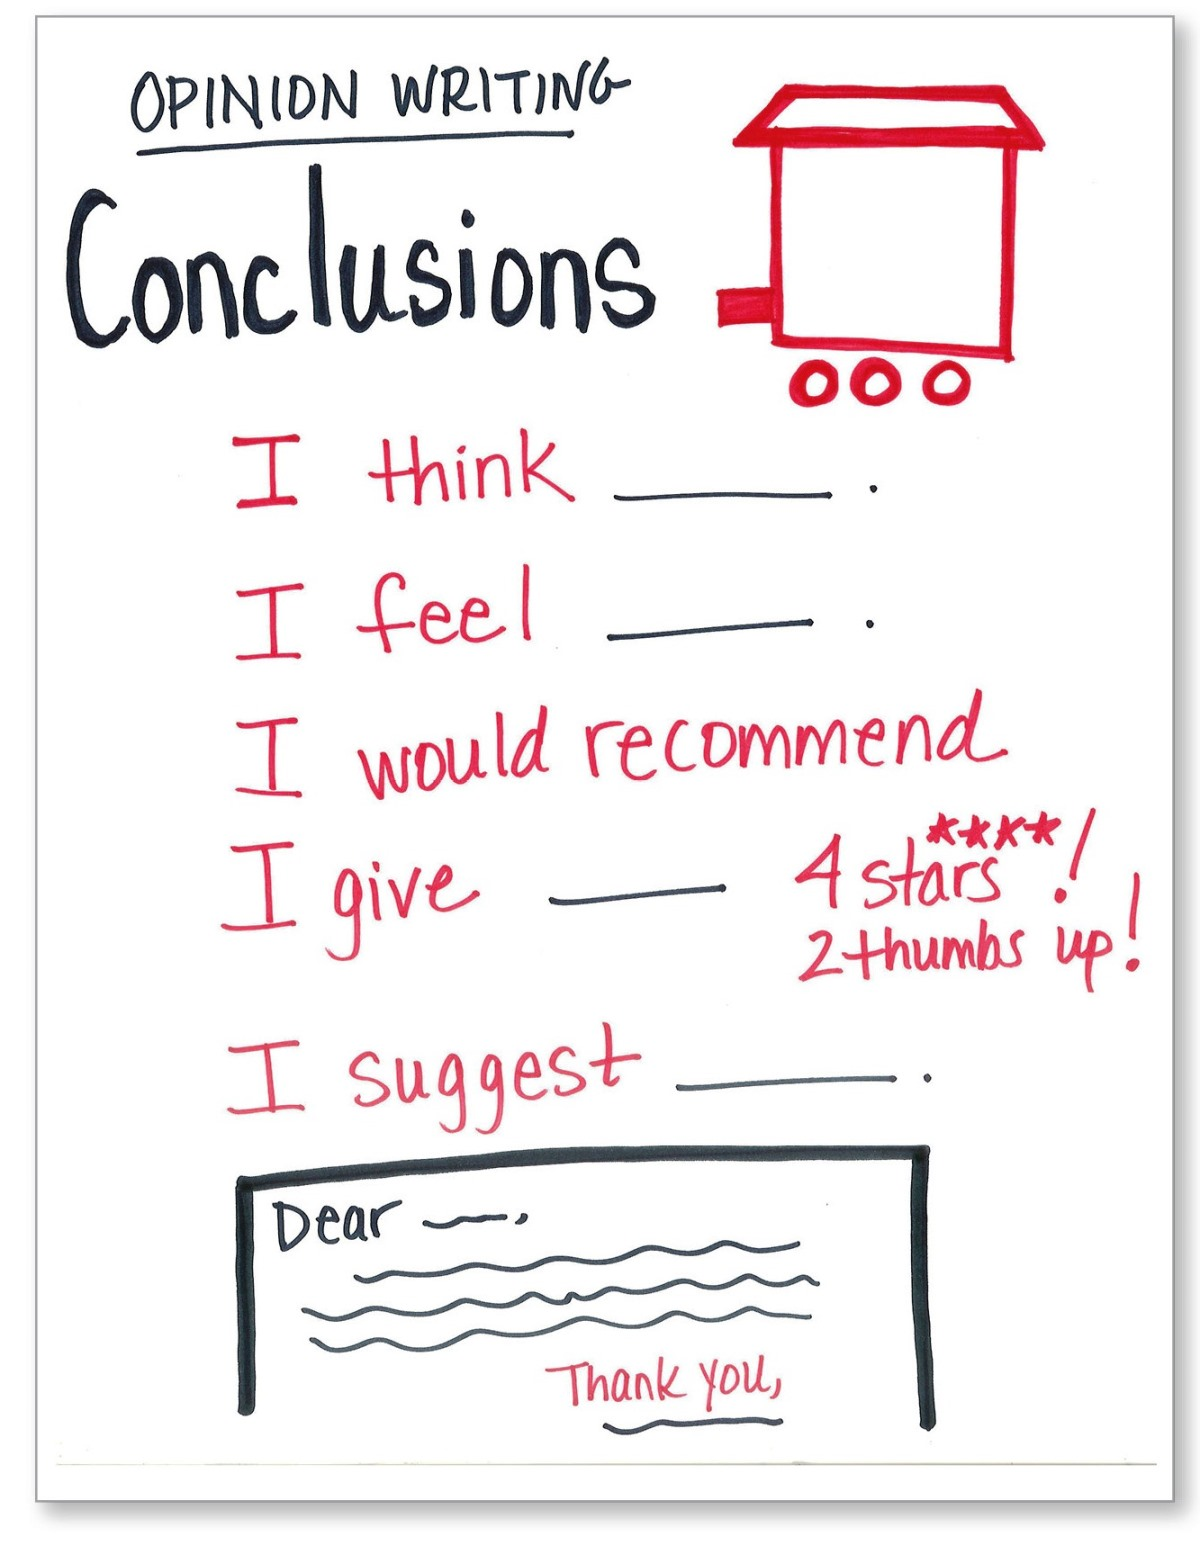 Opinion Writing Conclusions